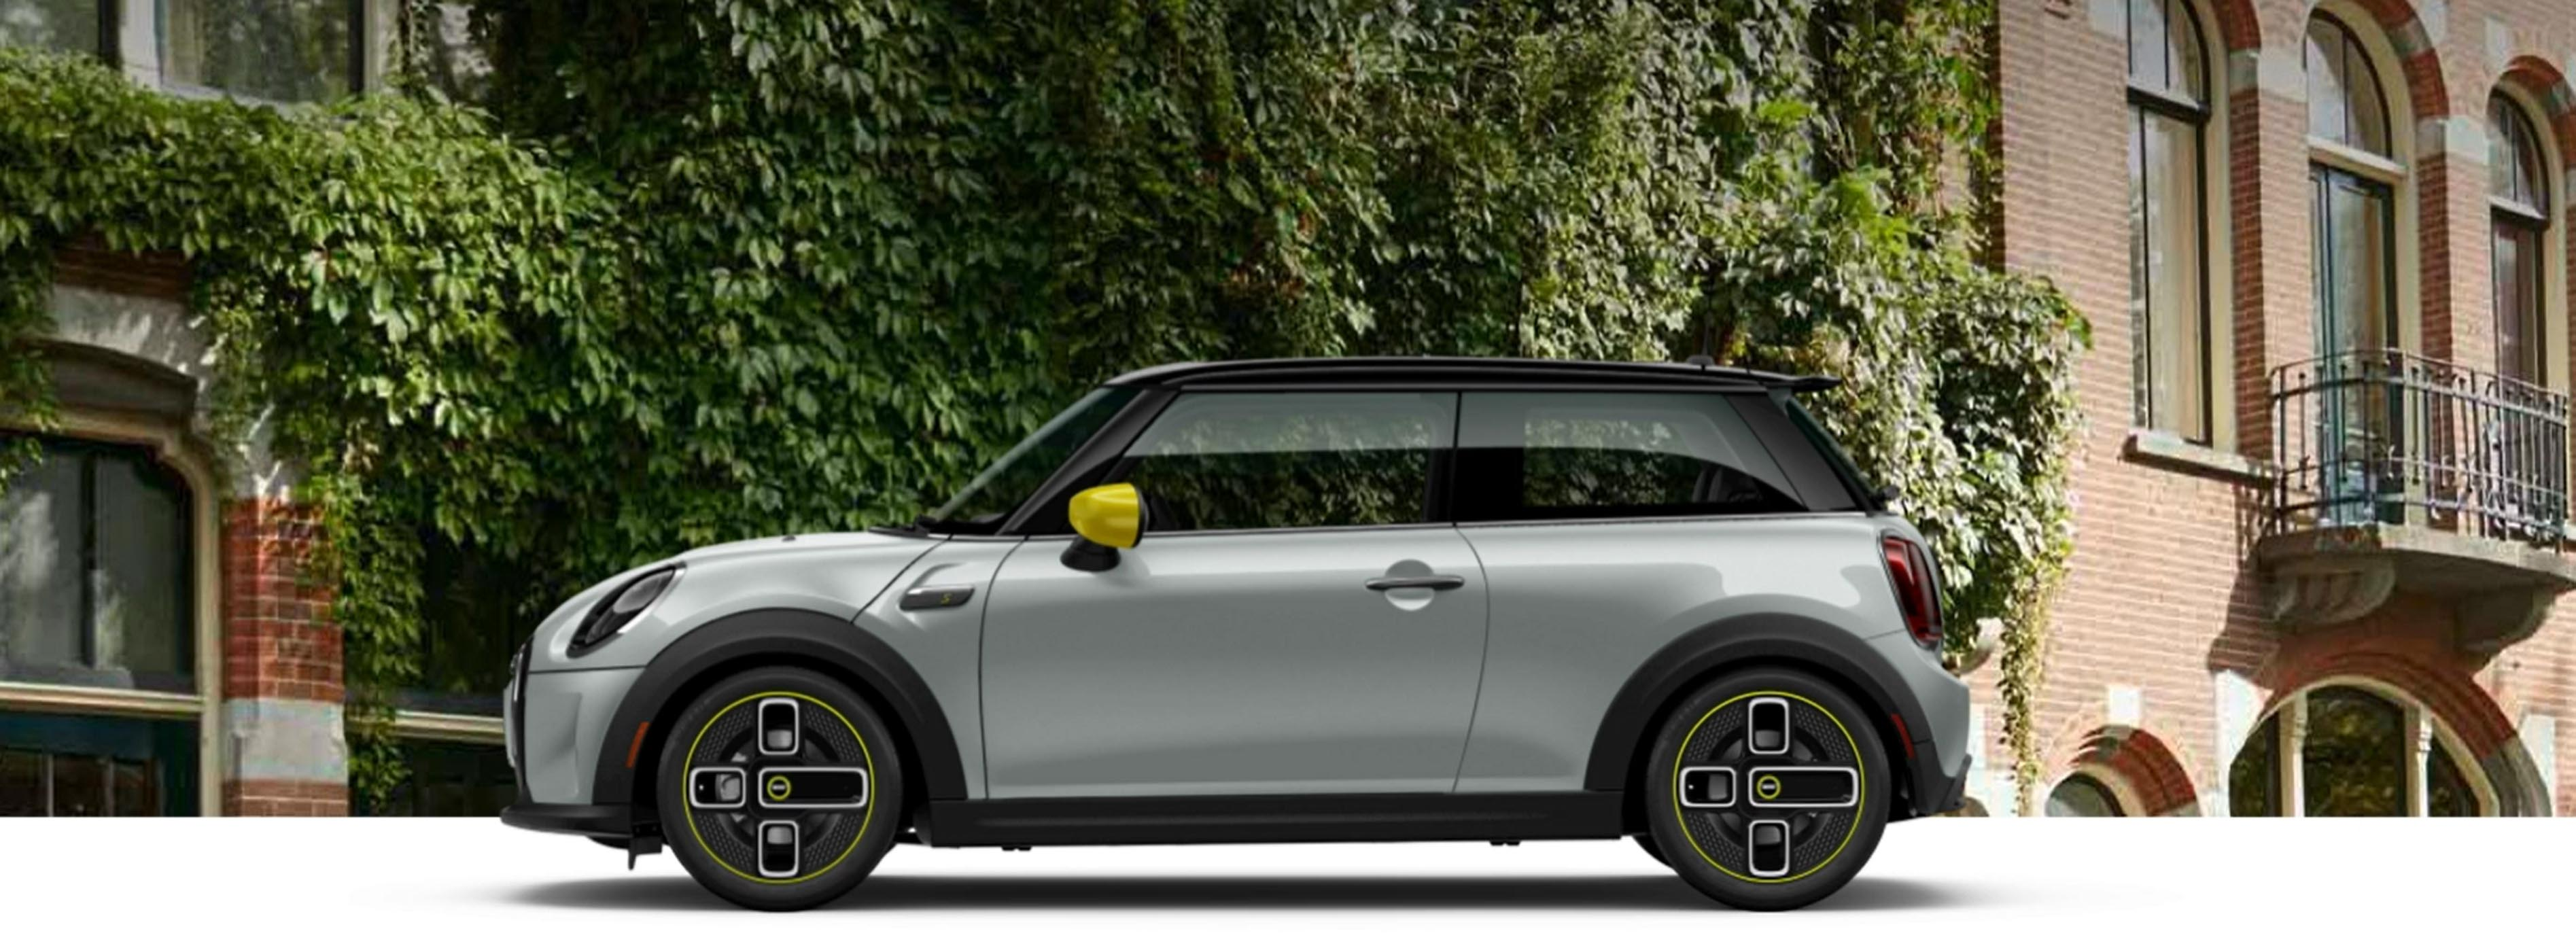 MINI MINI Electric Hardtop 2 Door – white silver with yellow trim and black hardtop parked in front of house.